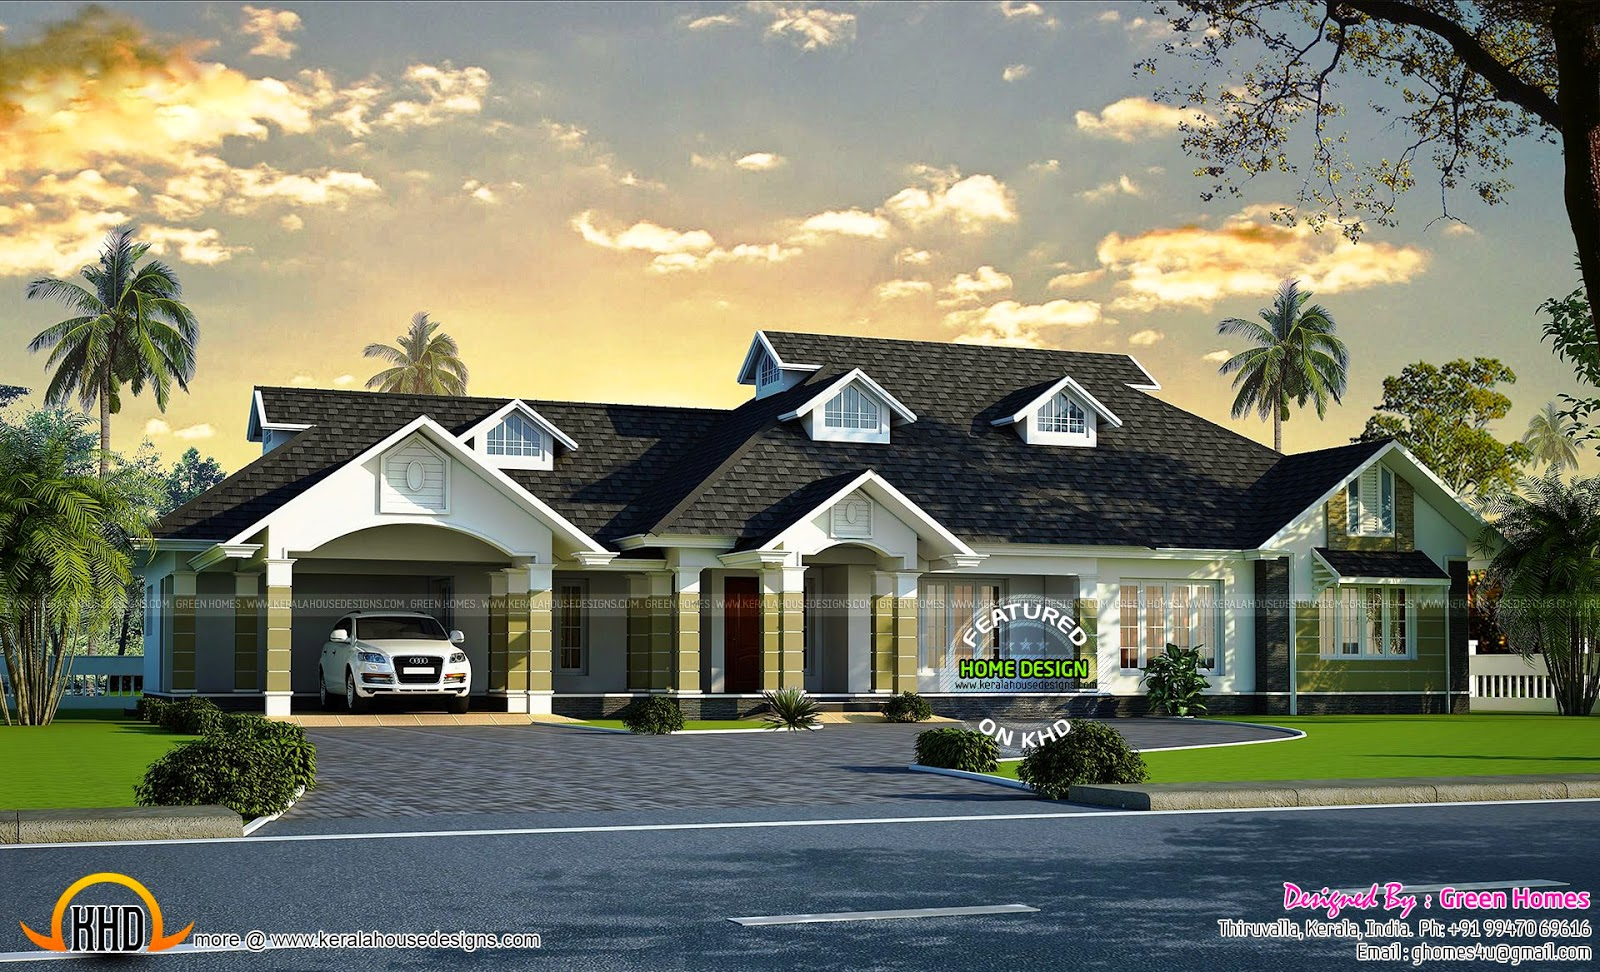 Luxury bungalow exterior kerala home design and floor plans for Luxury bungalow house plans